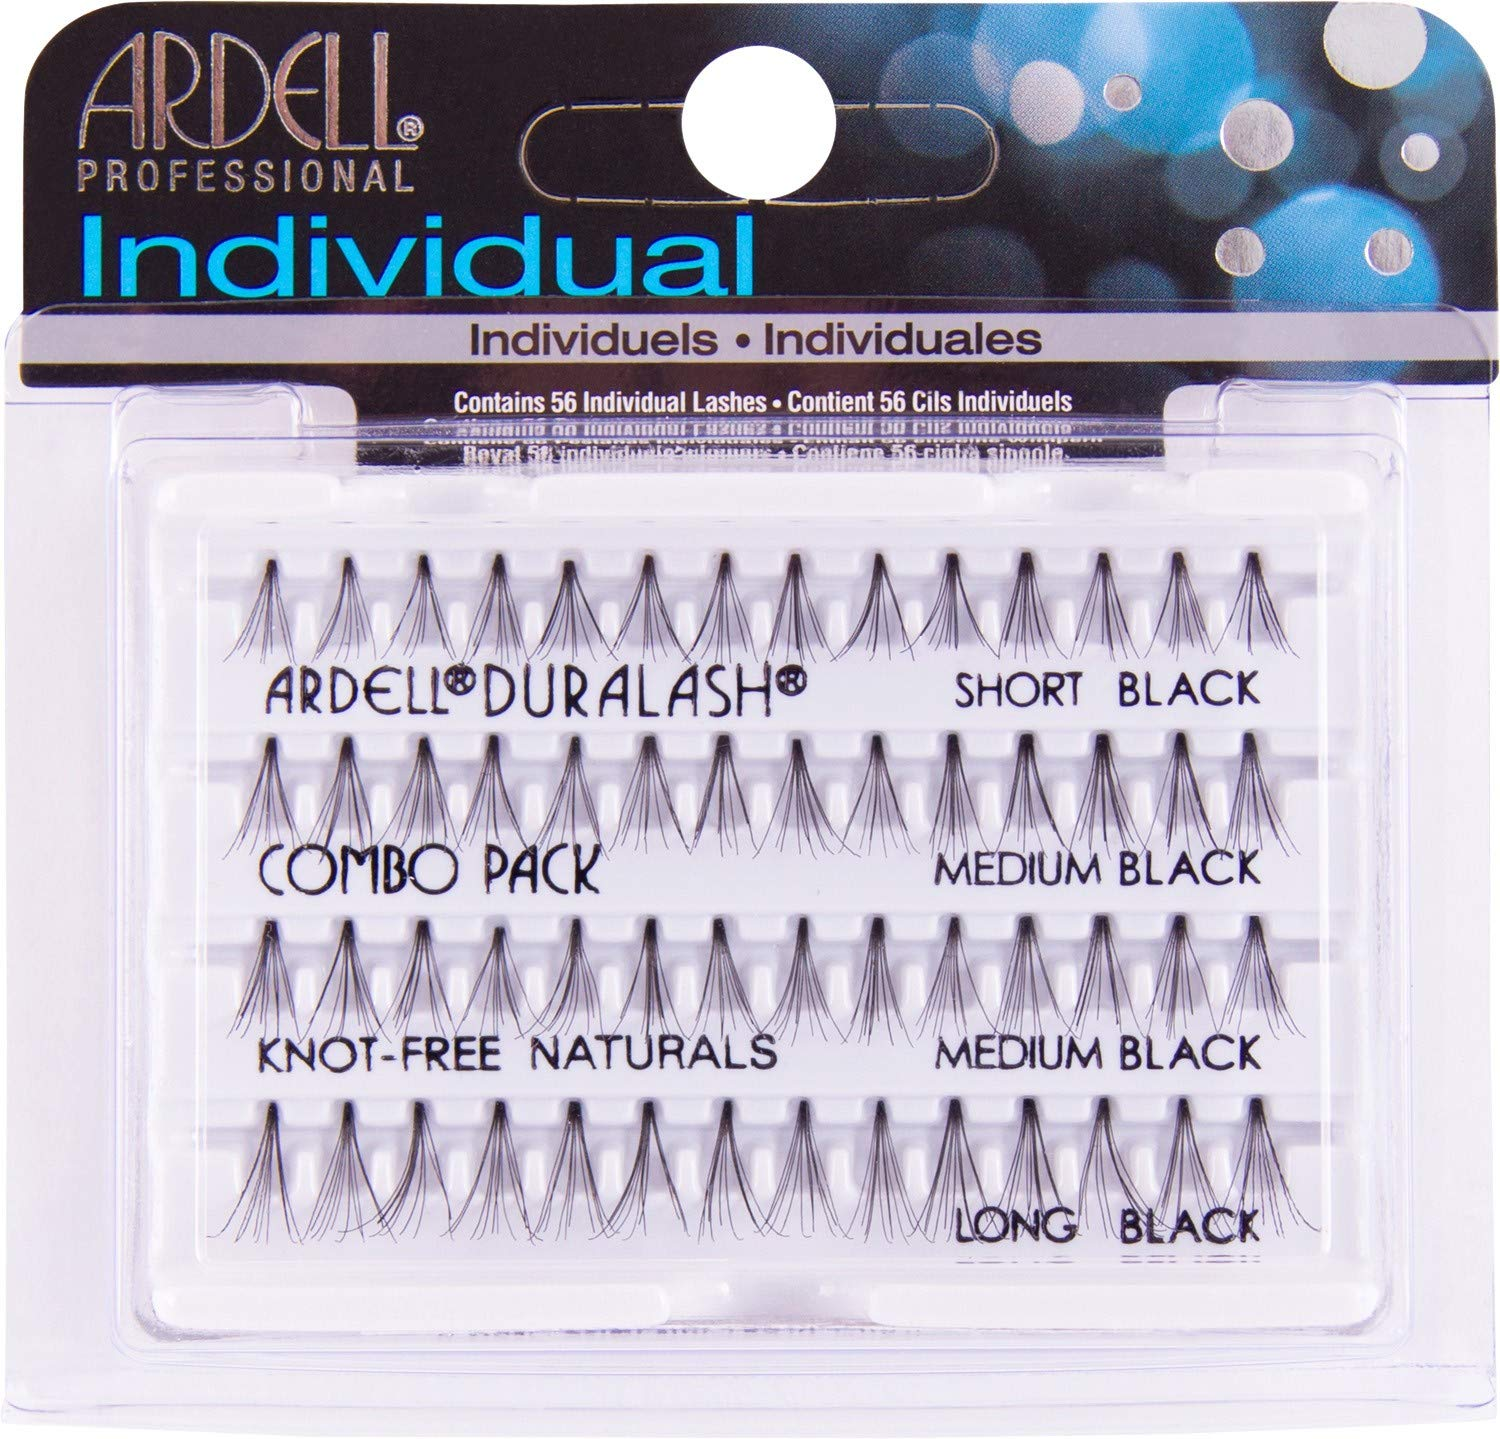 Ardell DuraLash Naturals Combo Pack - Flare Short, Medium, Long Black 240485